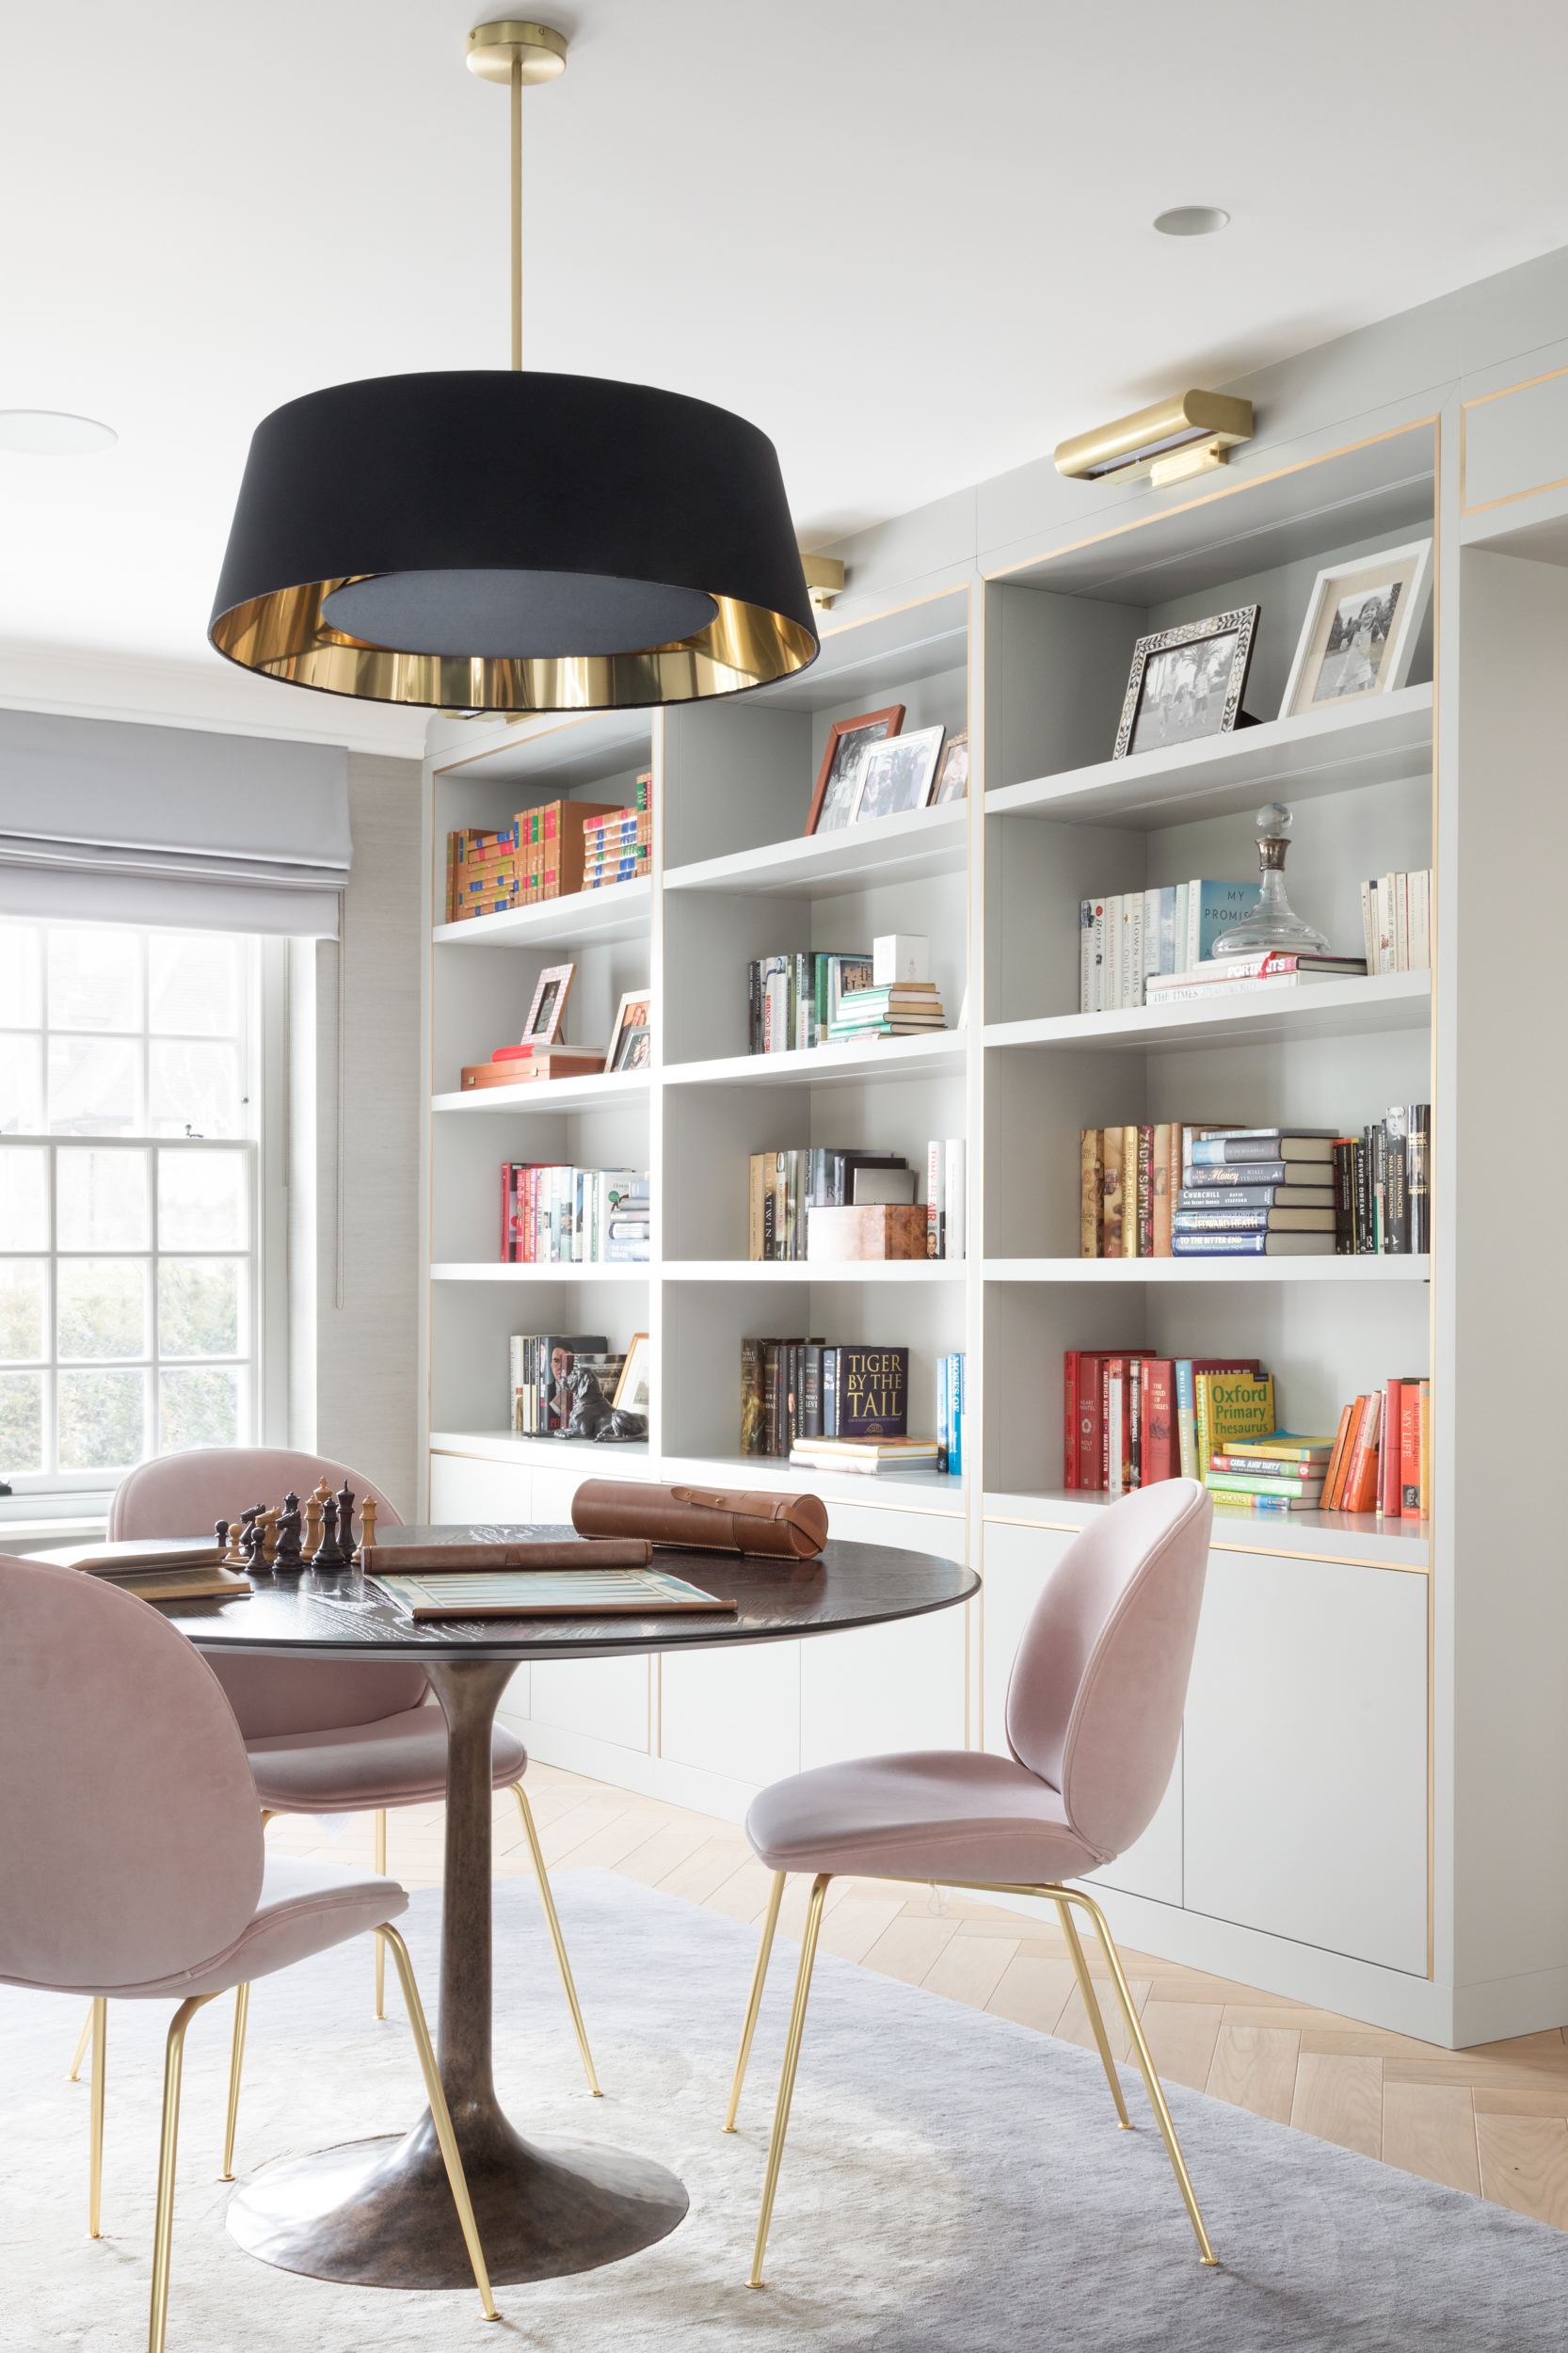 Paul Craig, Interior Photographer, Residential Photography, London, Living Room, Library